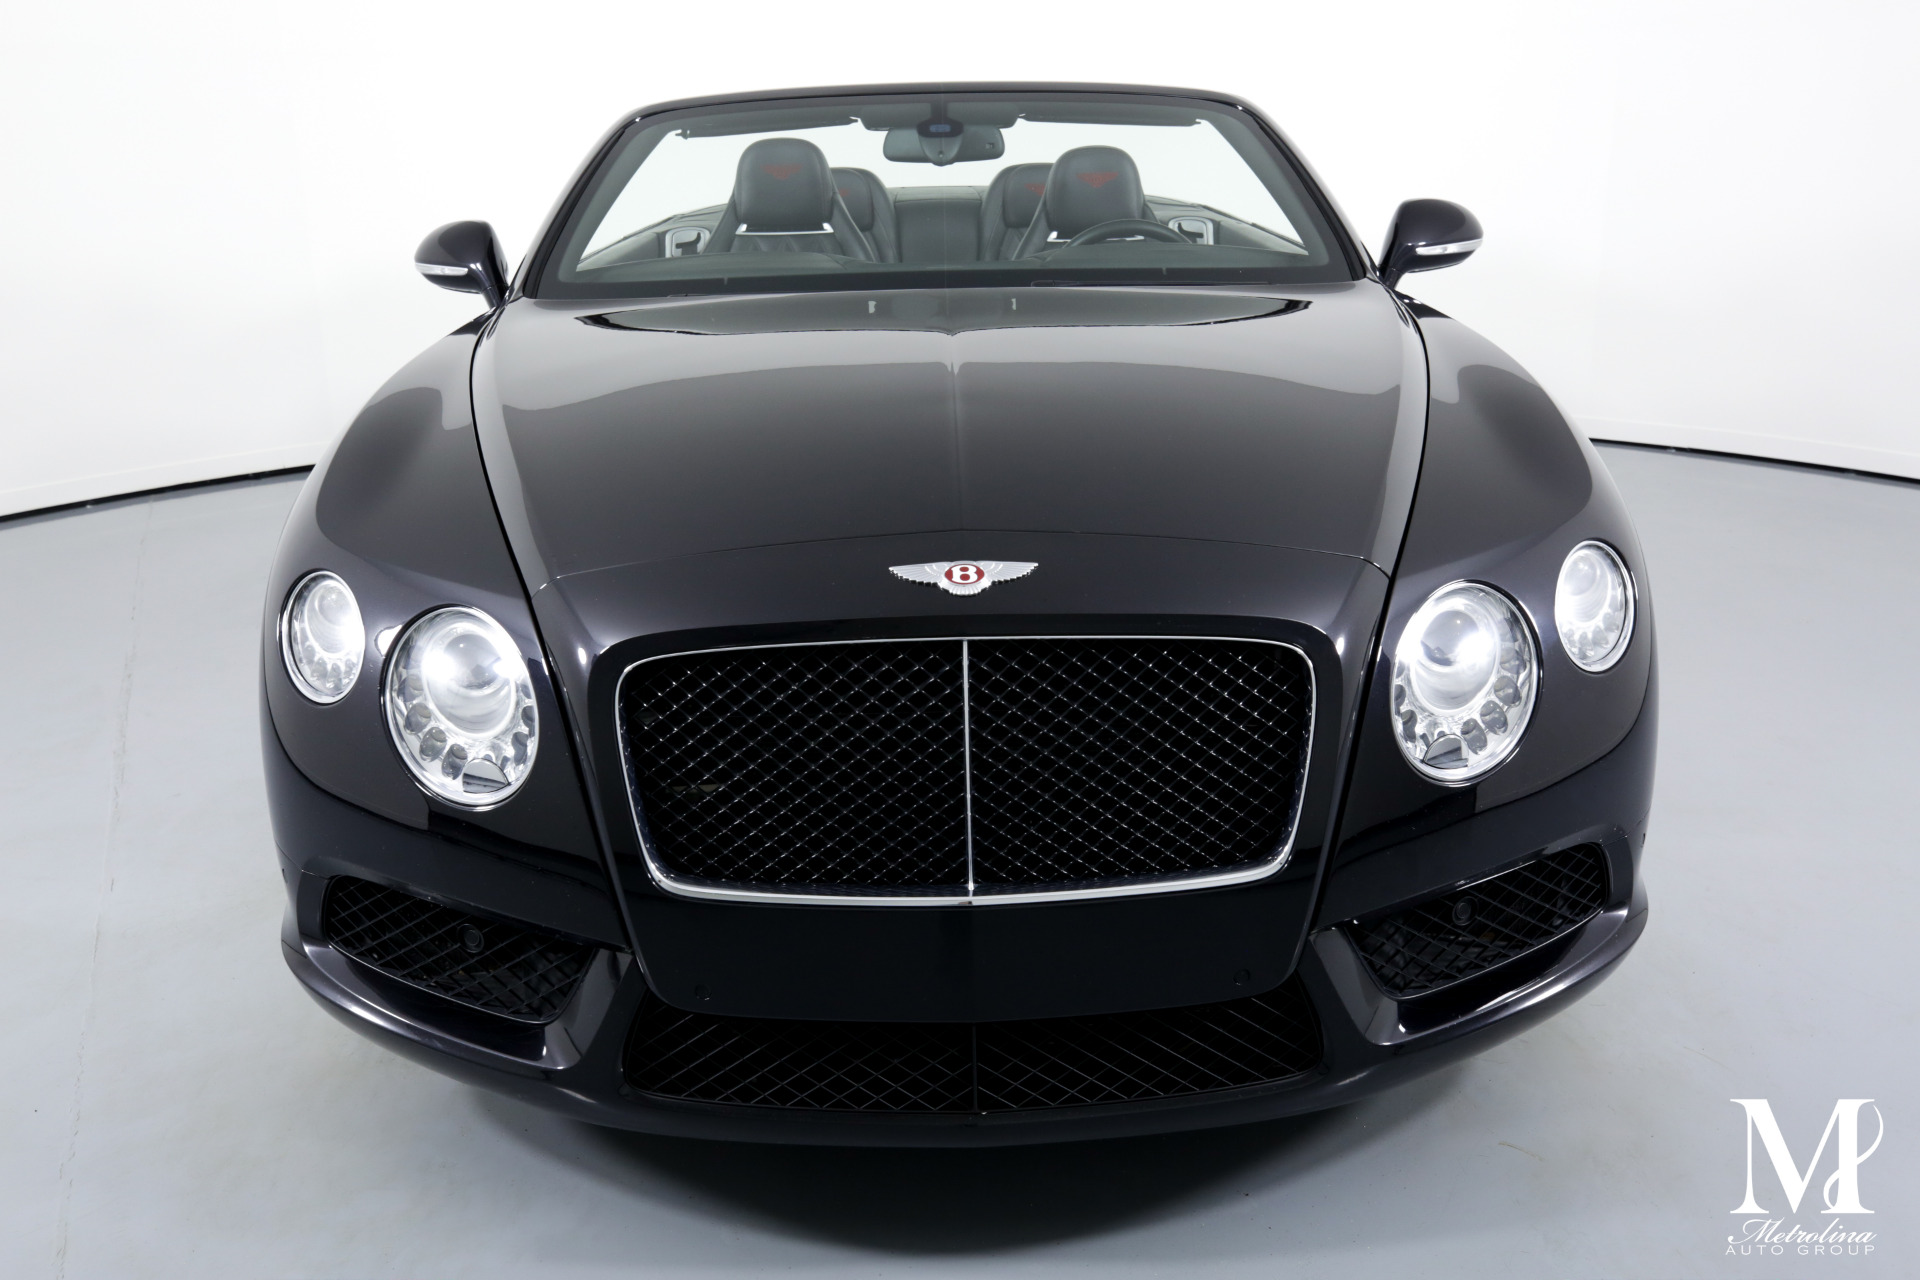 Used 2014 Bentley Continental GT V8 for sale $87,456 at Metrolina Auto Group in Charlotte NC 28217 - 4